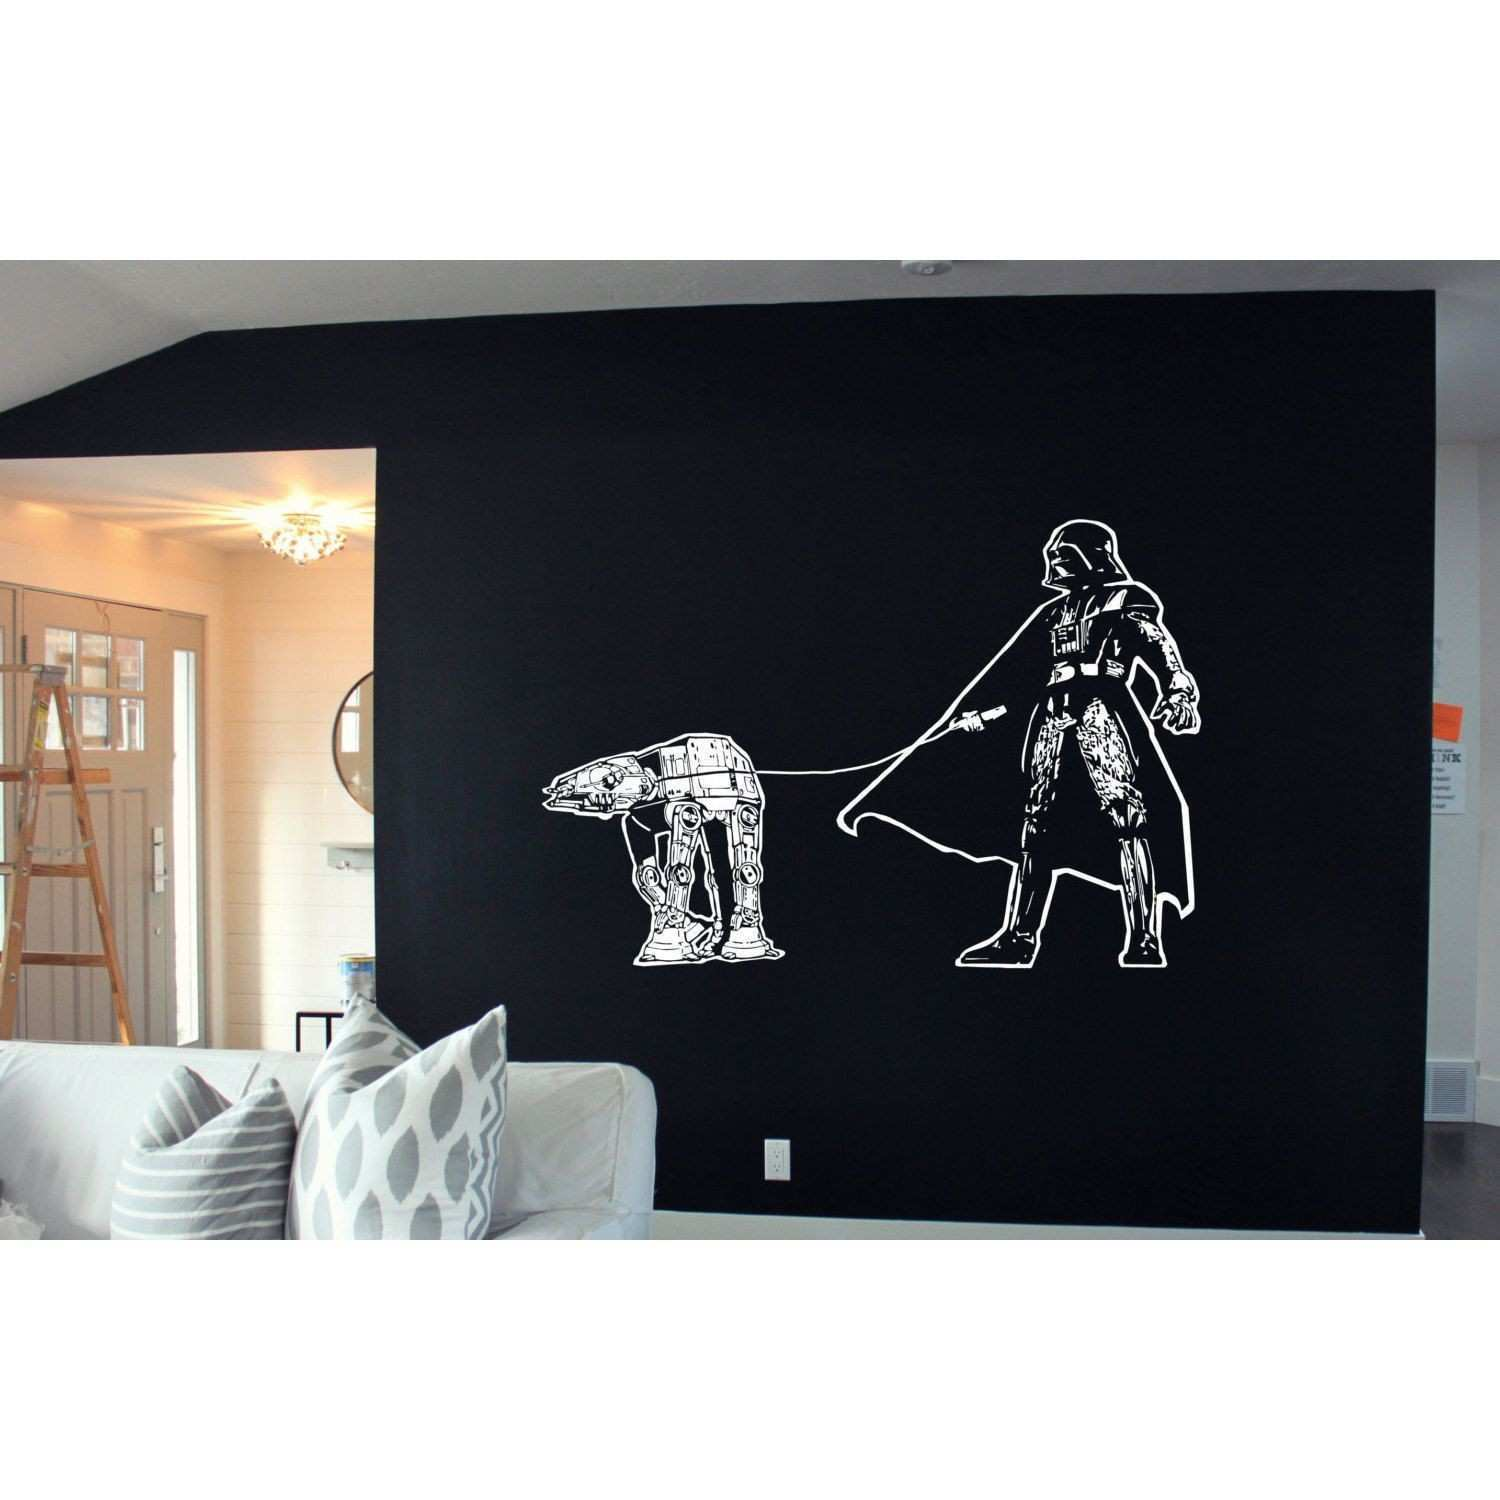 li Artist Stickalz li li Title Darth Vader Walking Atat Star